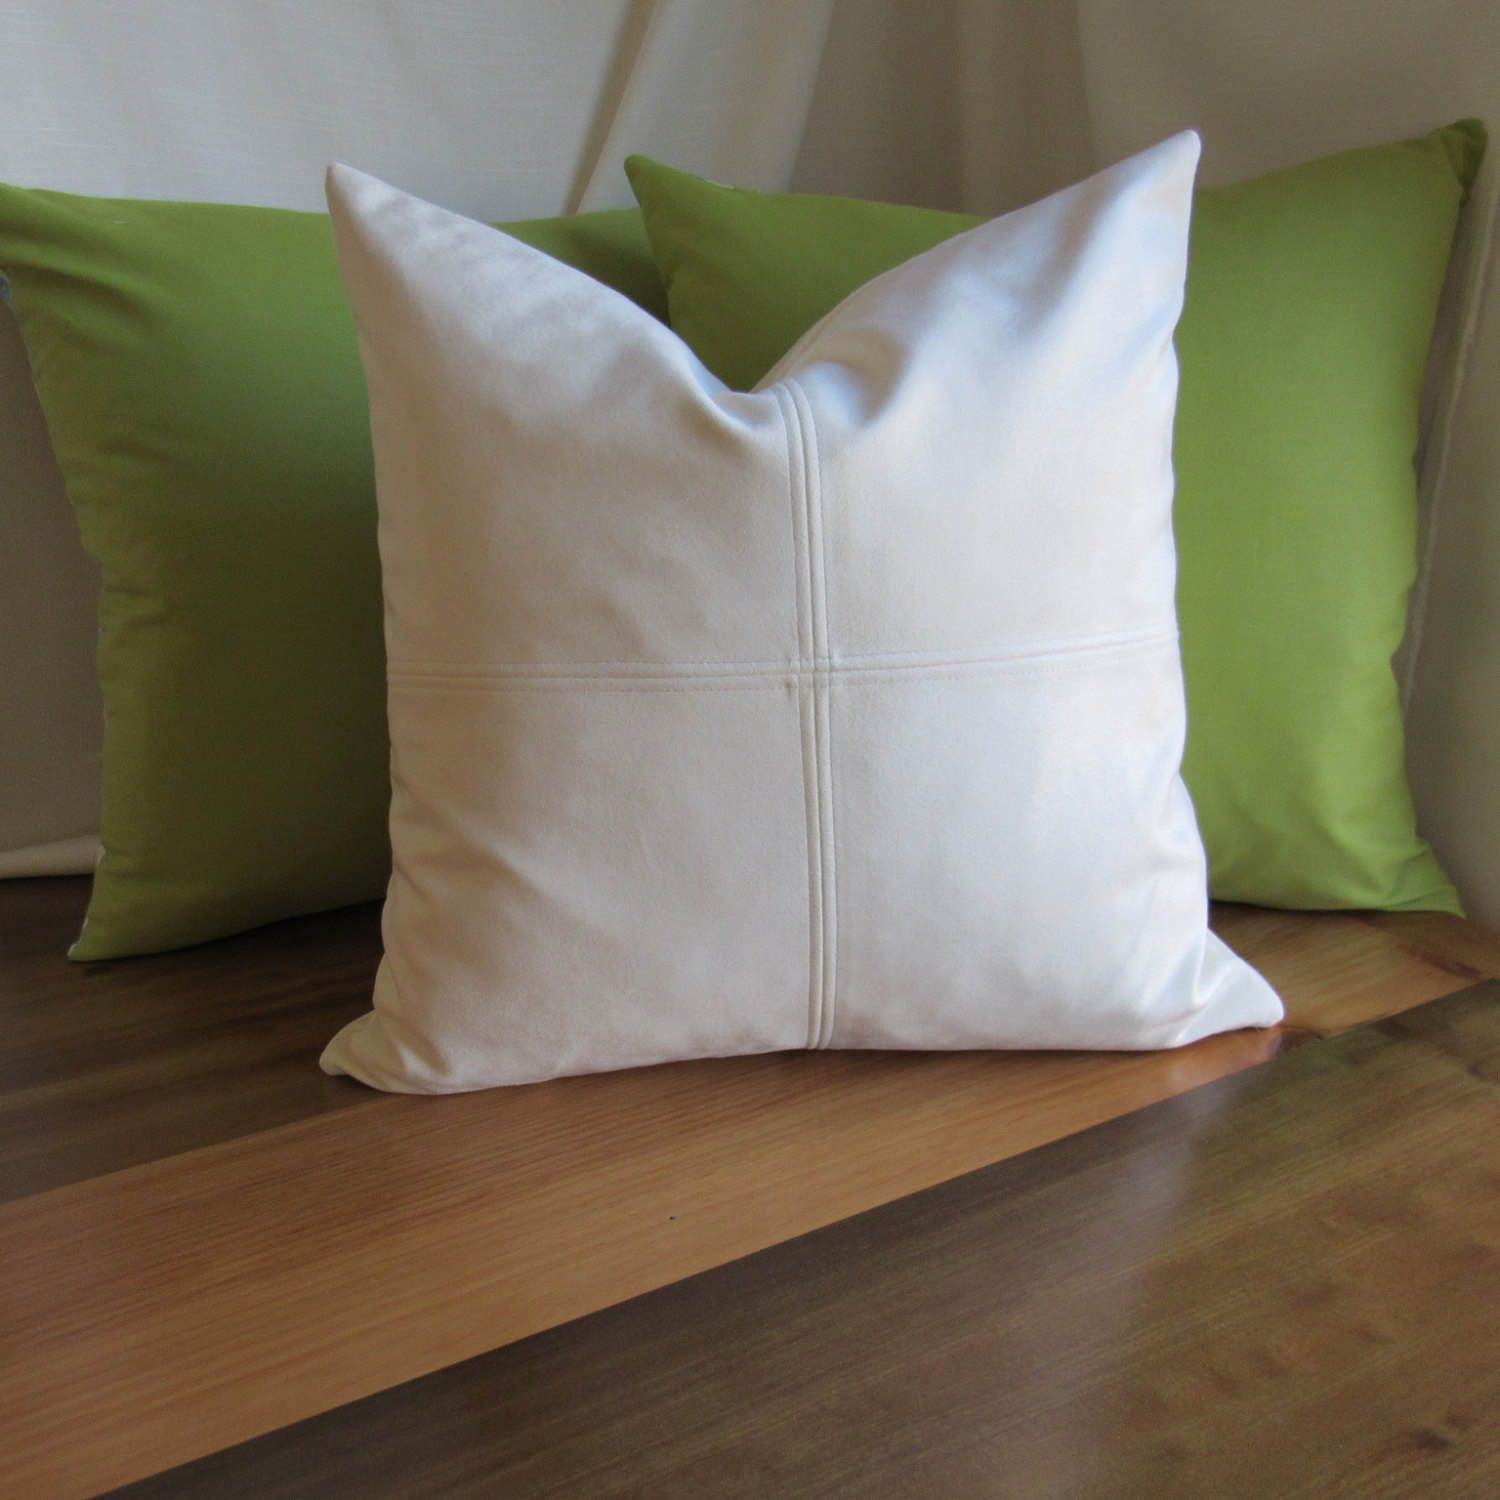 ultra suede decorative pillow cream color pillows with zippers rh pinterest com